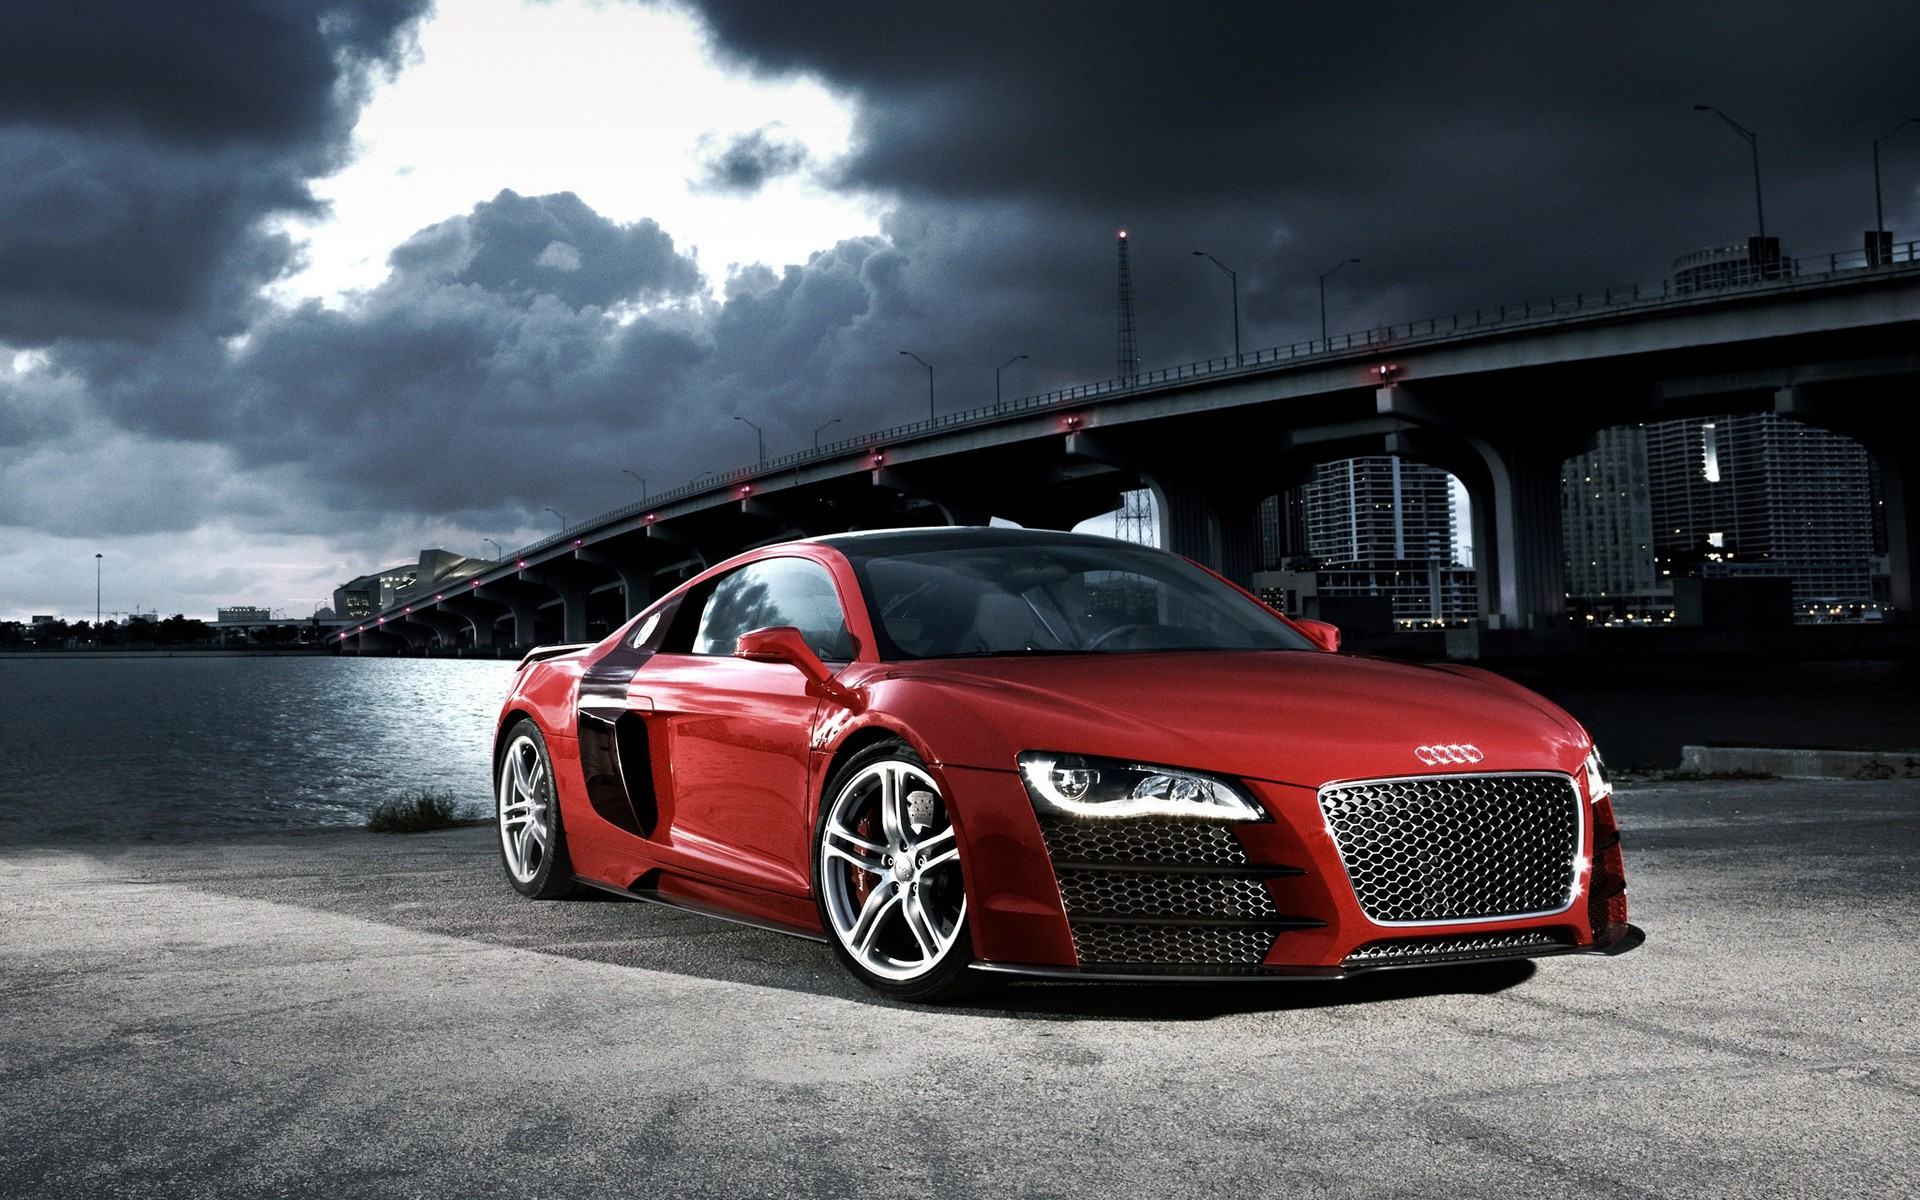 Download Desktop Wallpaper Audi RS Photos Of Red Sports Car - Red sports car